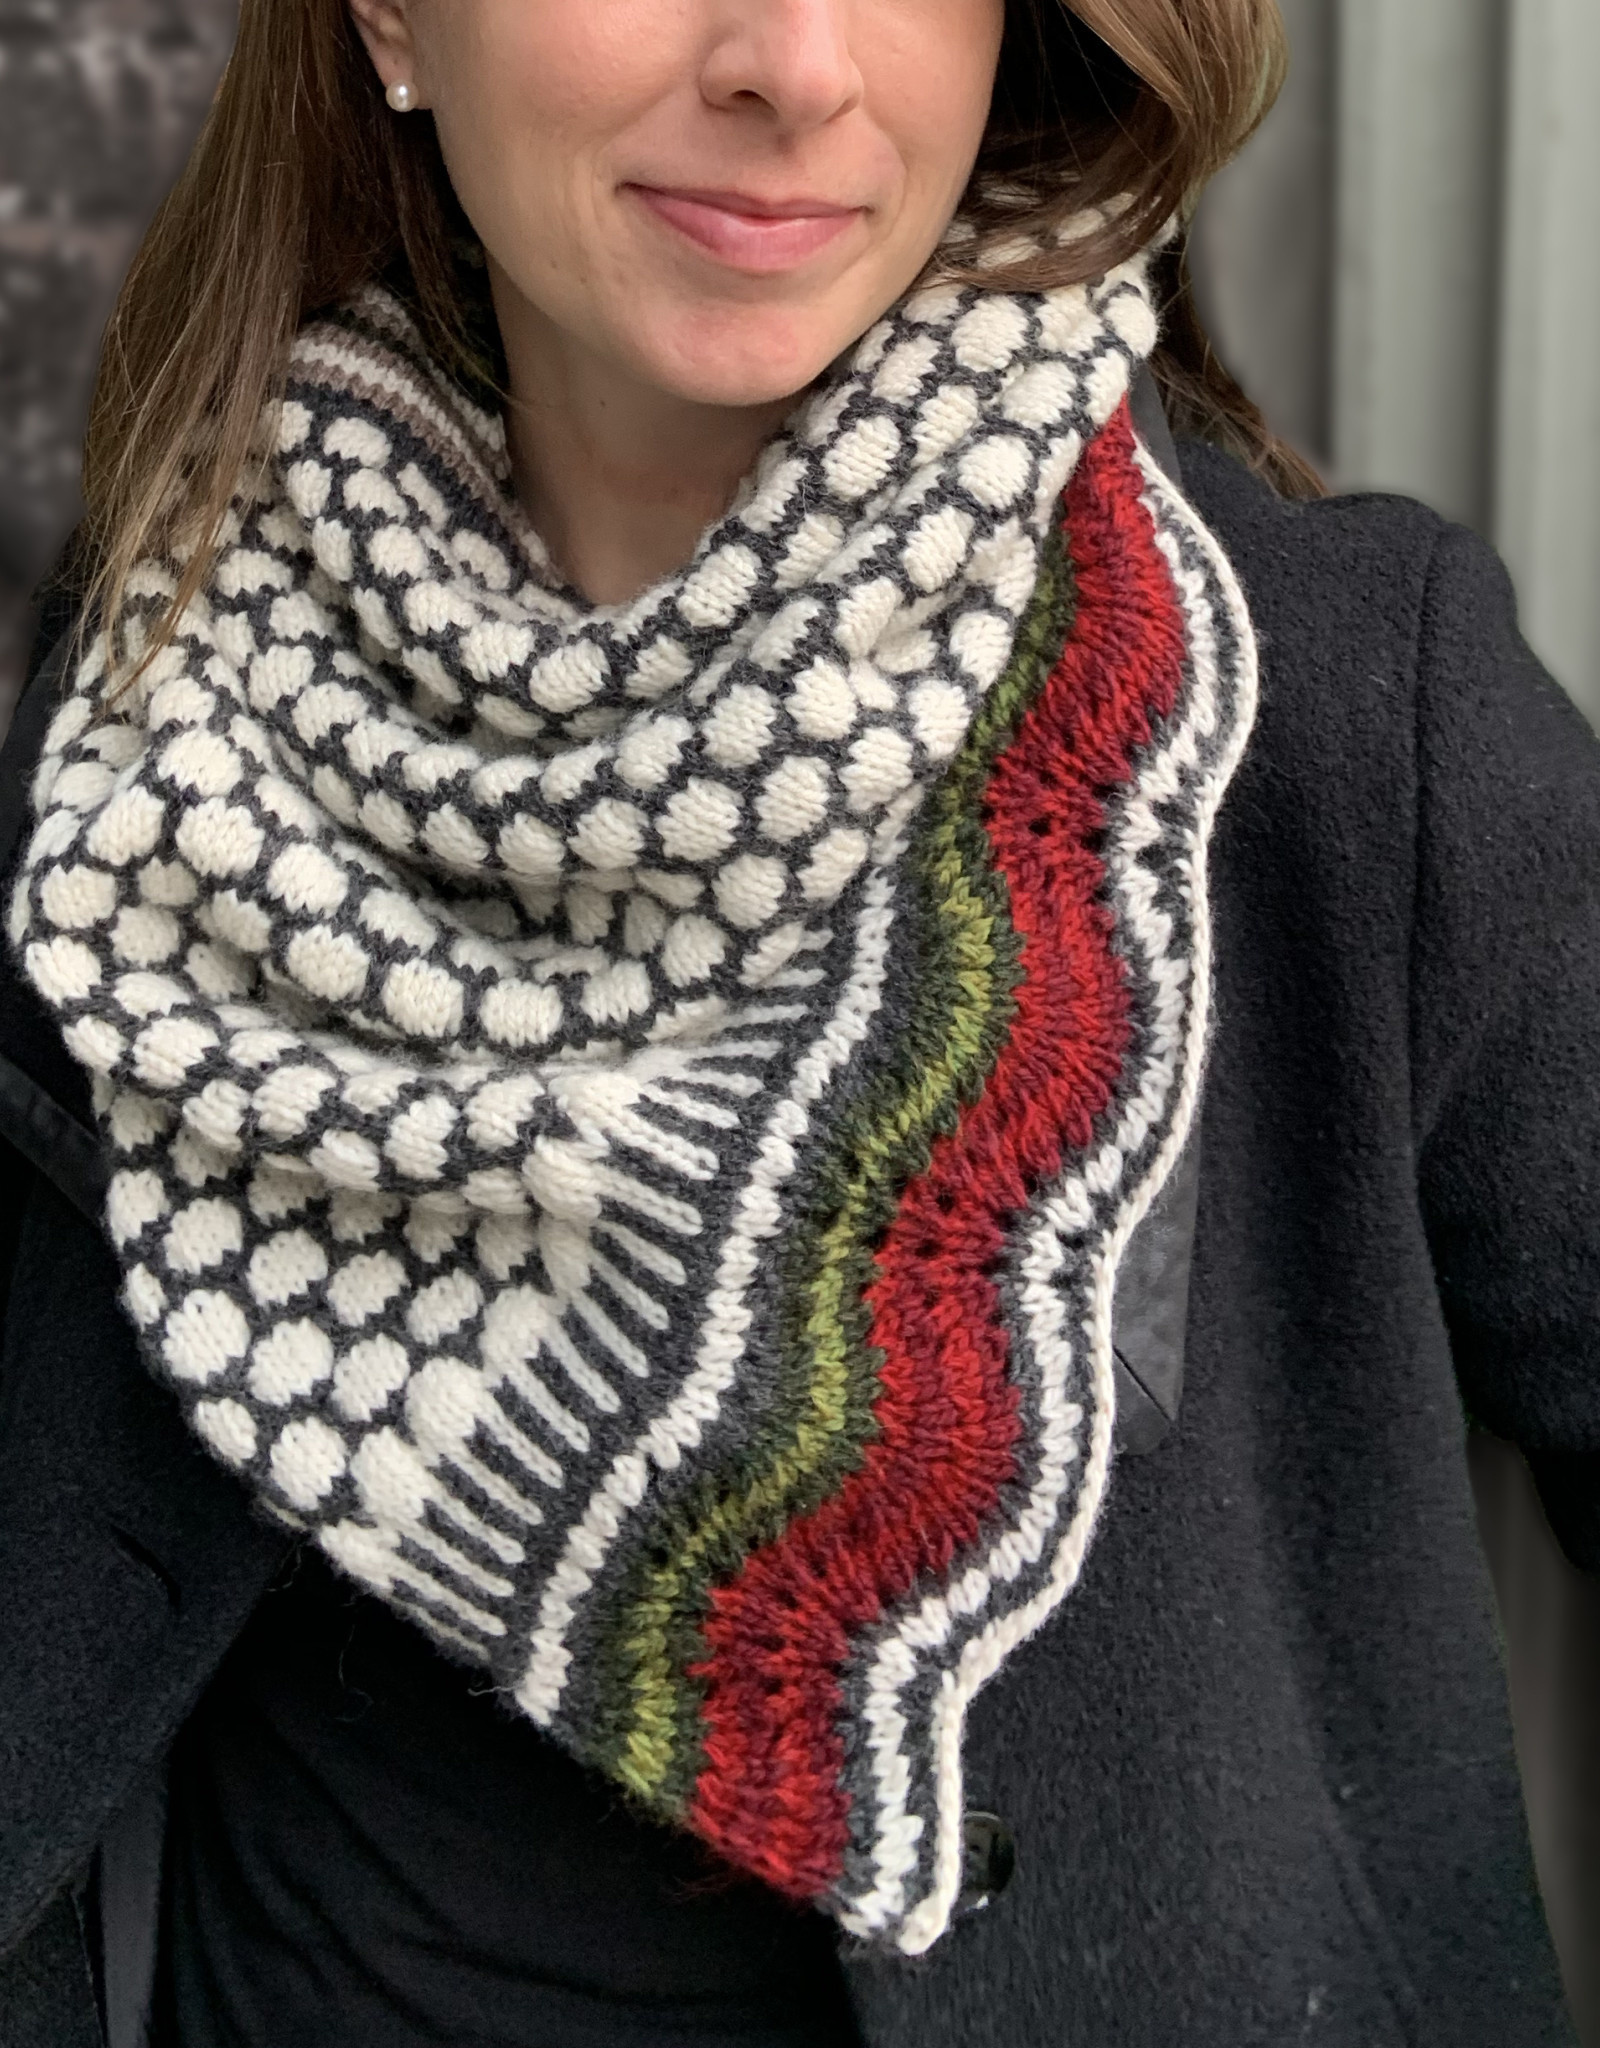 New Huffman Studios Wintersonne Cowl Kit  - with pattern